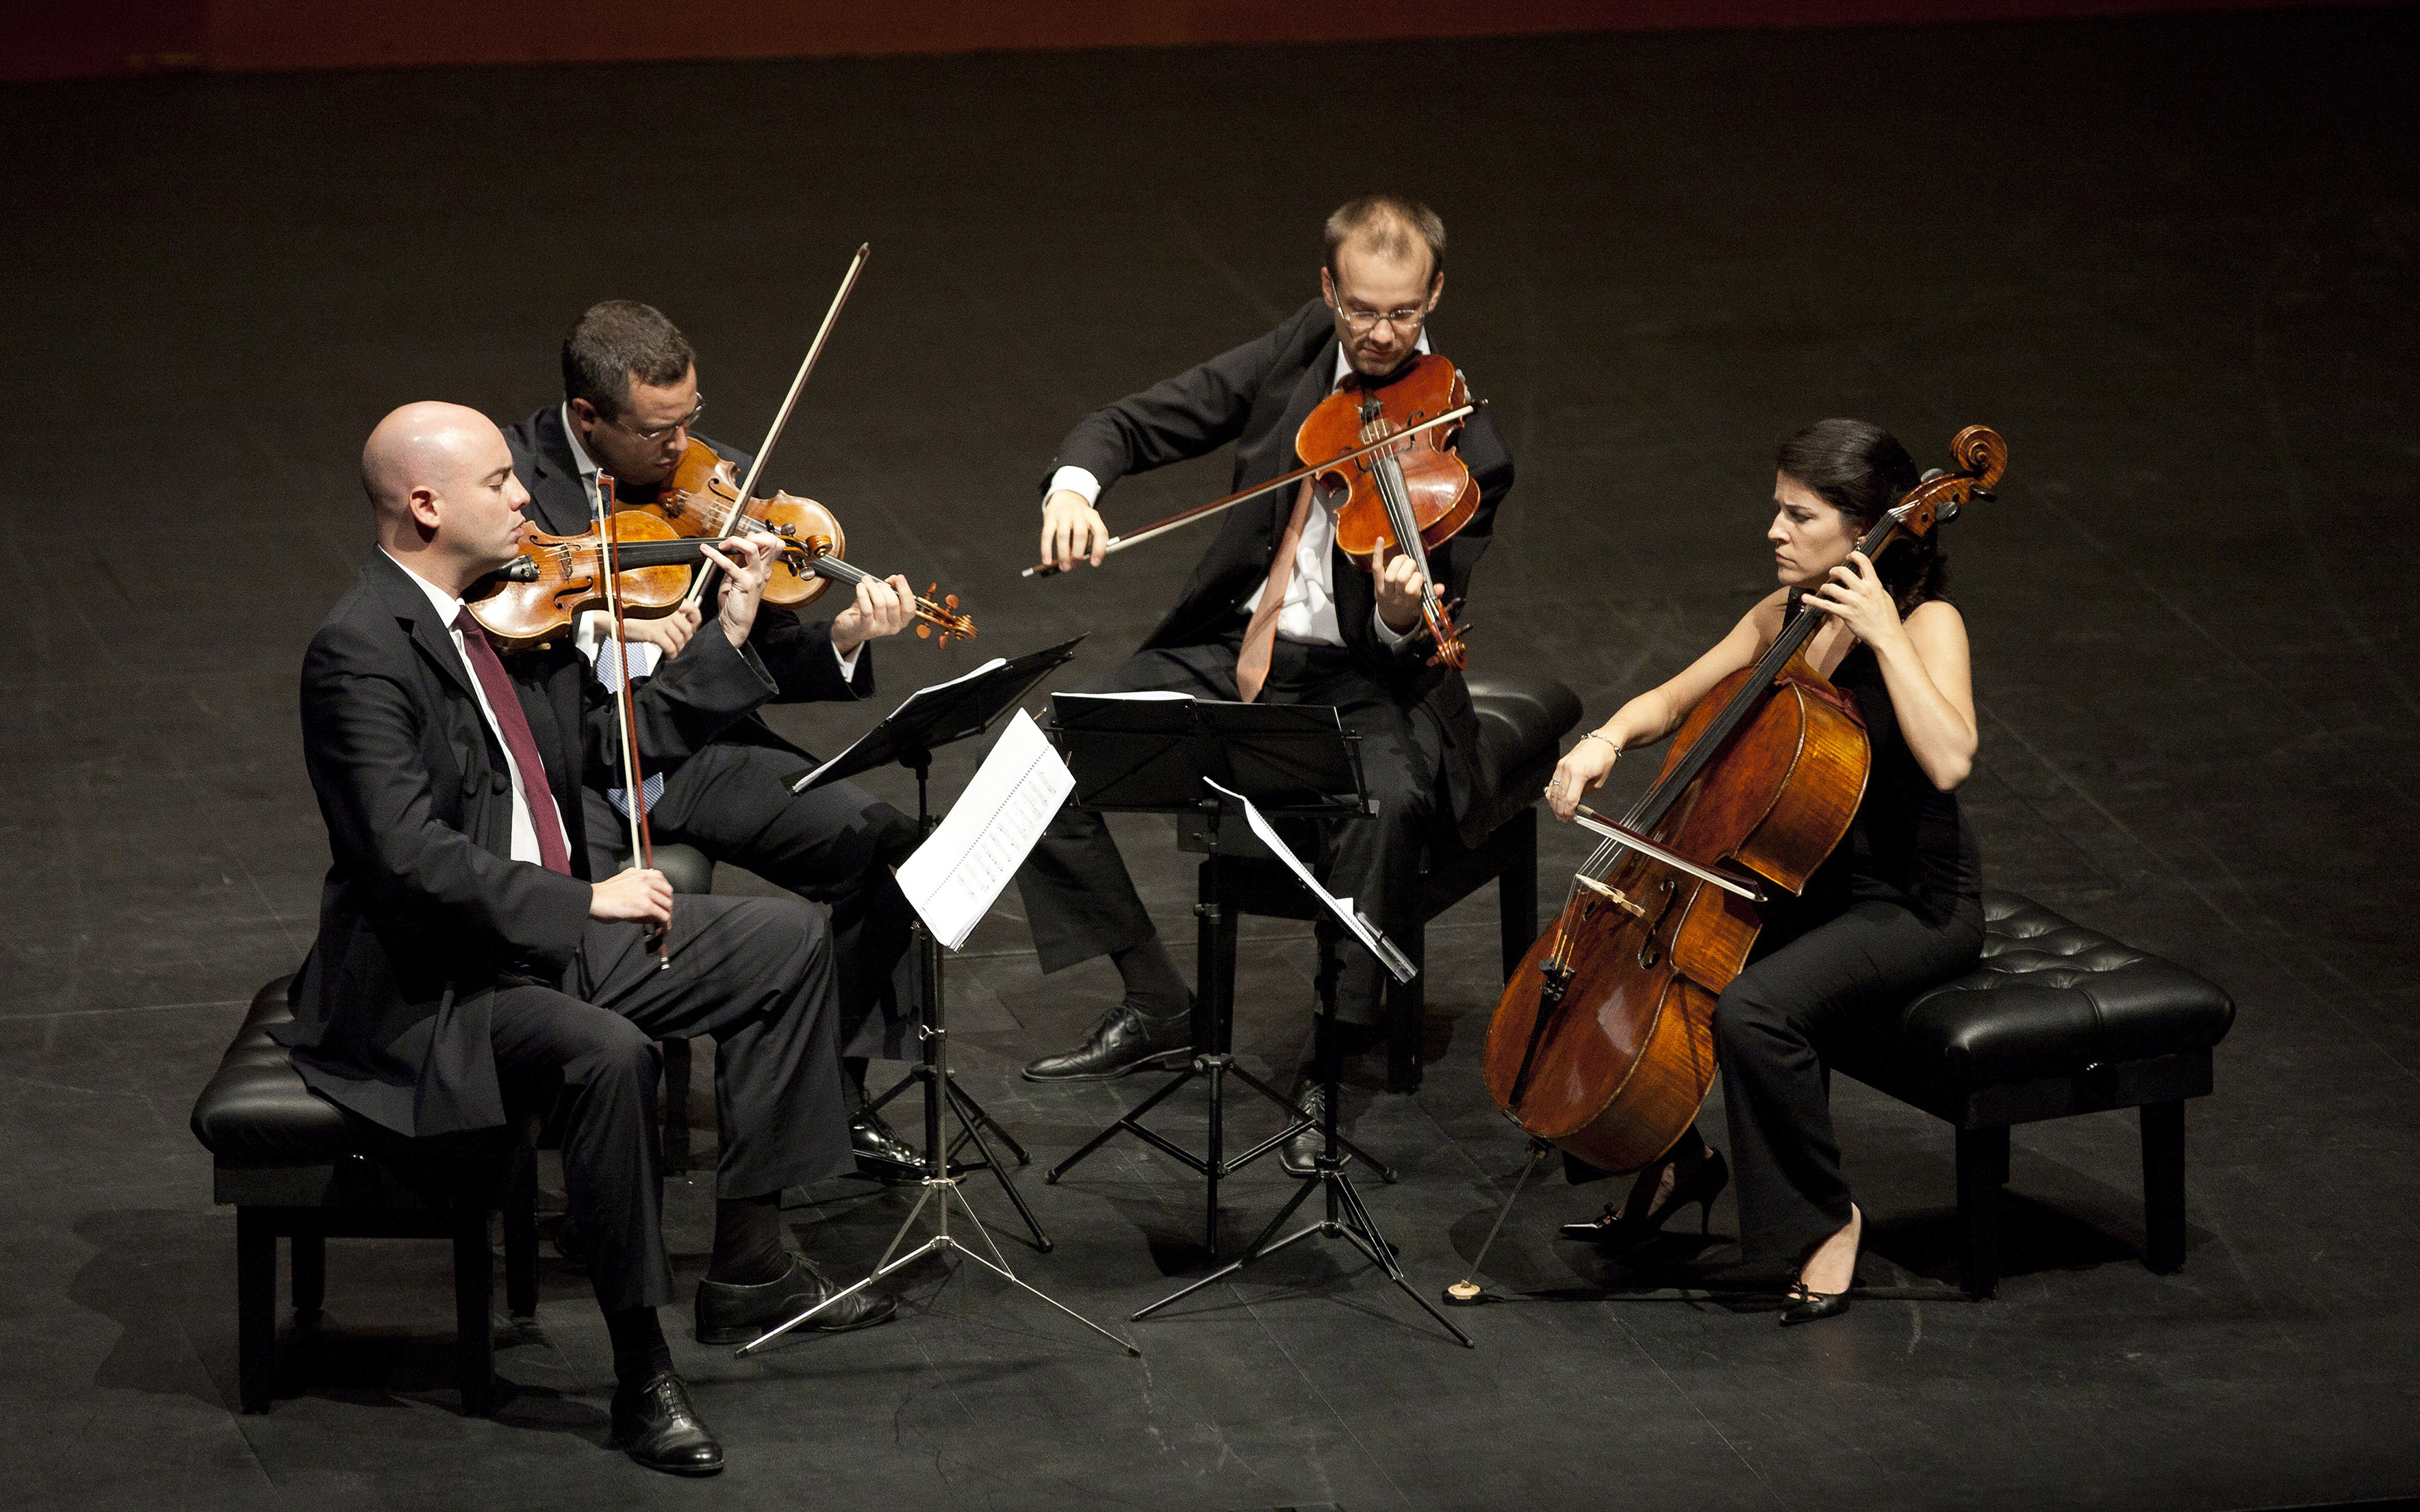 Olin quartet series resumes with Spain's renowned Cuarteto Quiroga News